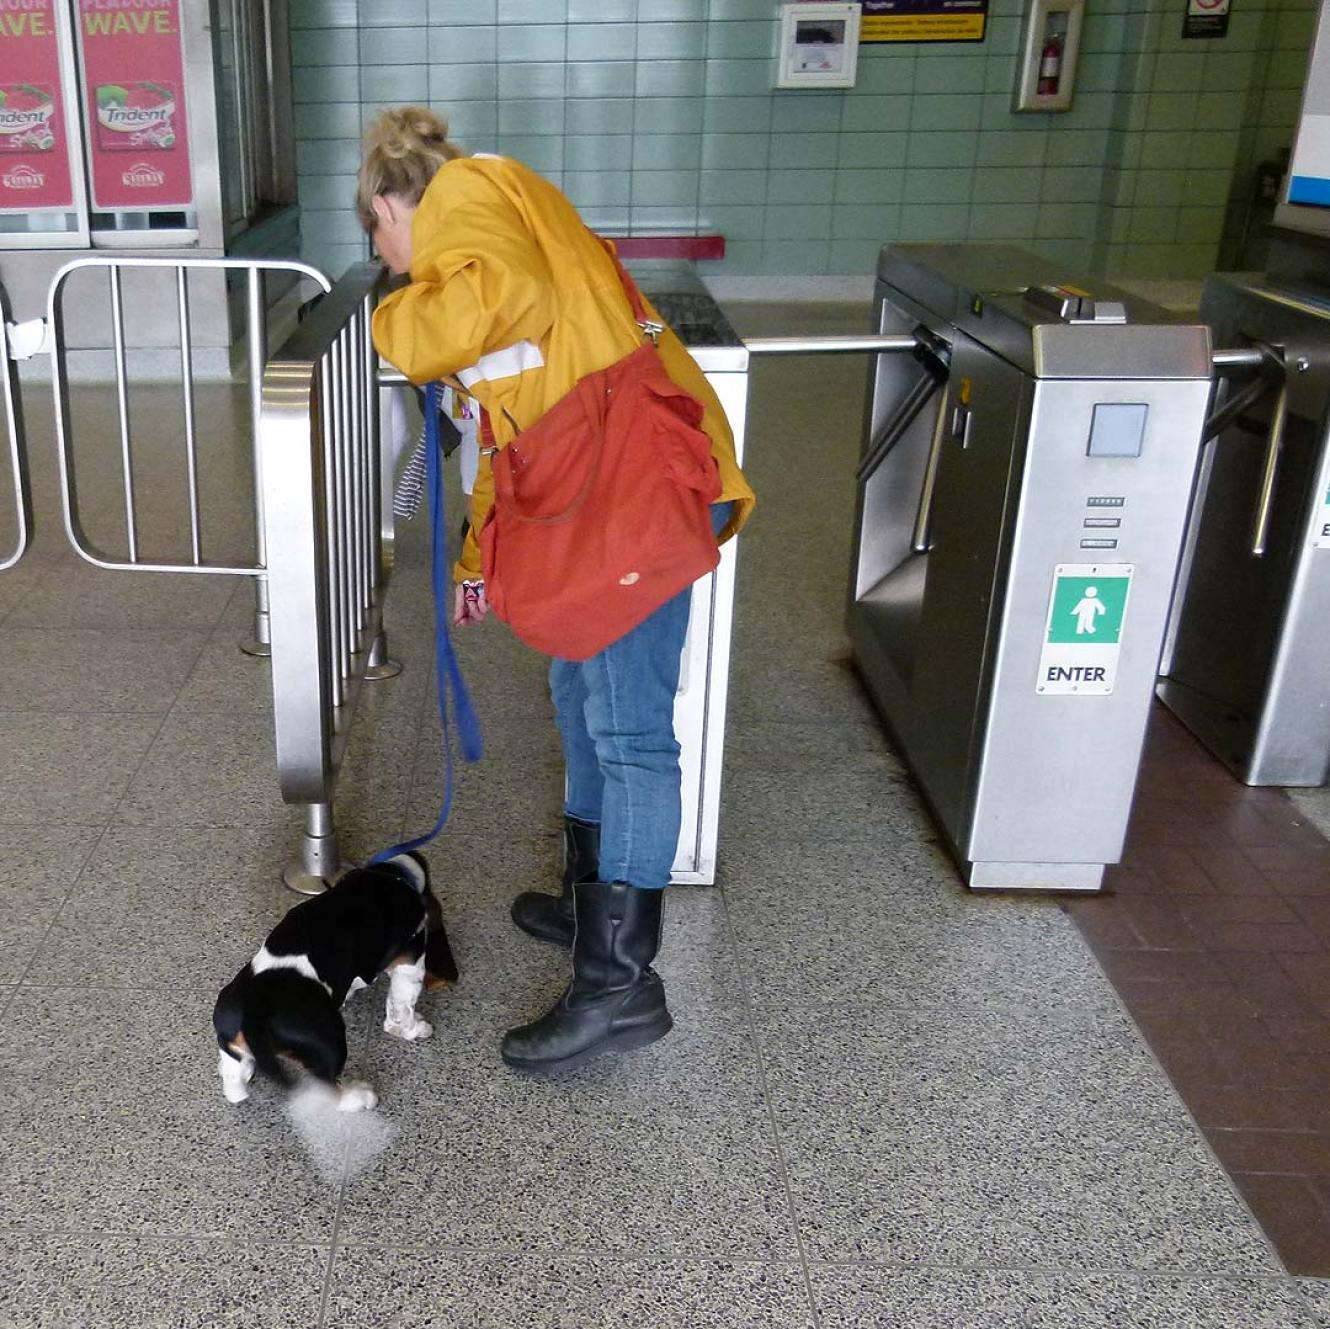 Puppy encounters turnstile in the subway station